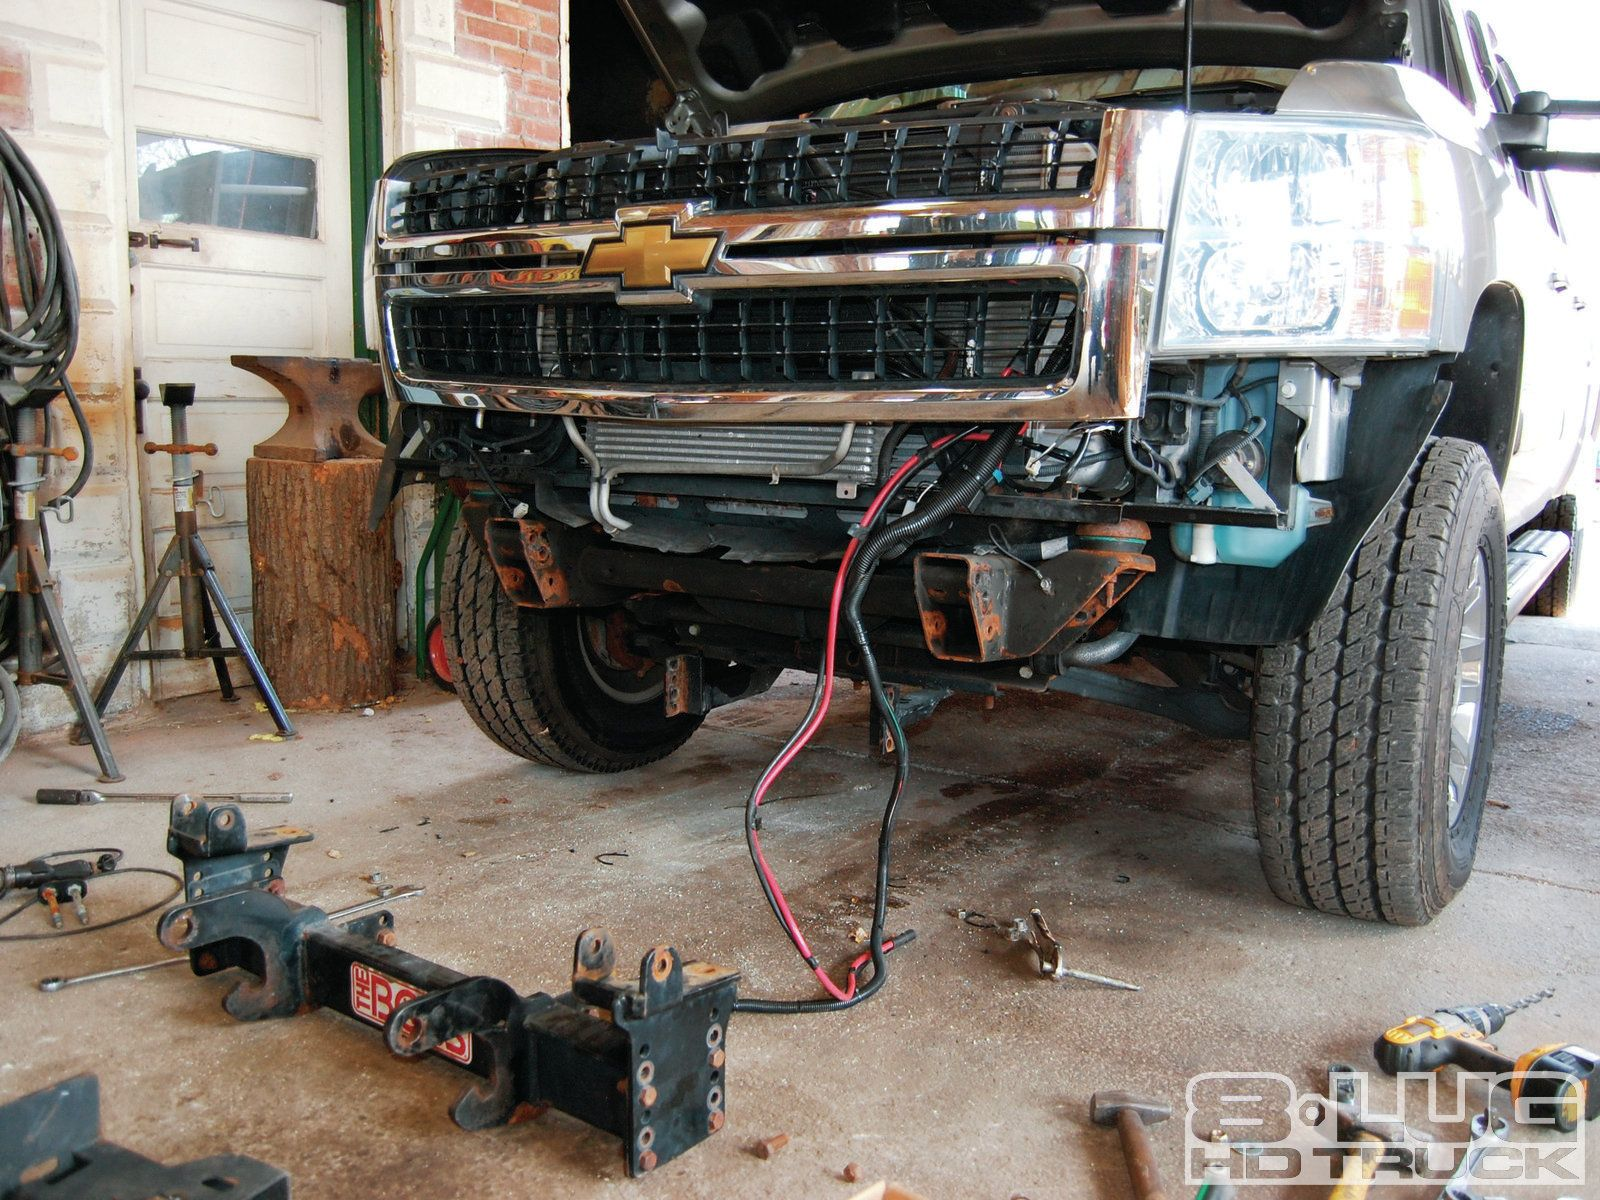 1210-8l-36+winch-time-ultimate-tow-and-work-truck-upgrades+new-plow-mounts.jpg